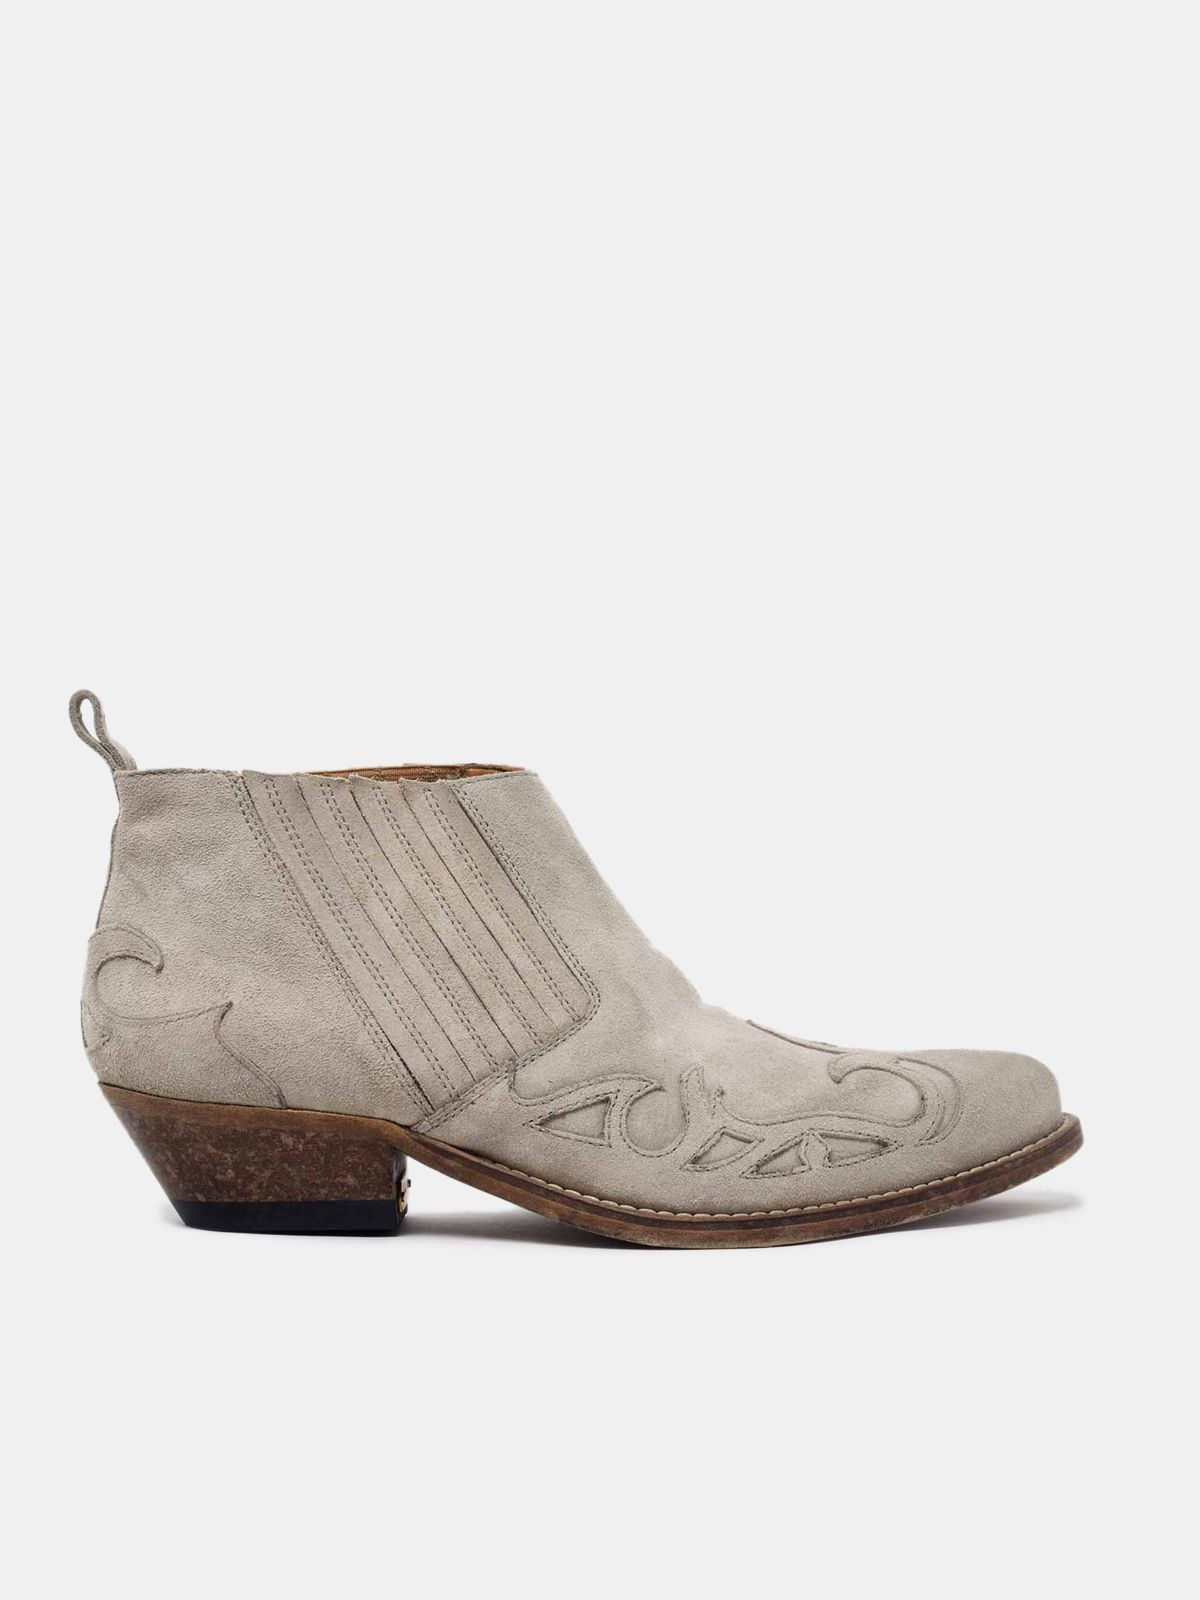 Golden Goose - Santiago Low ankle boots in suede leather in